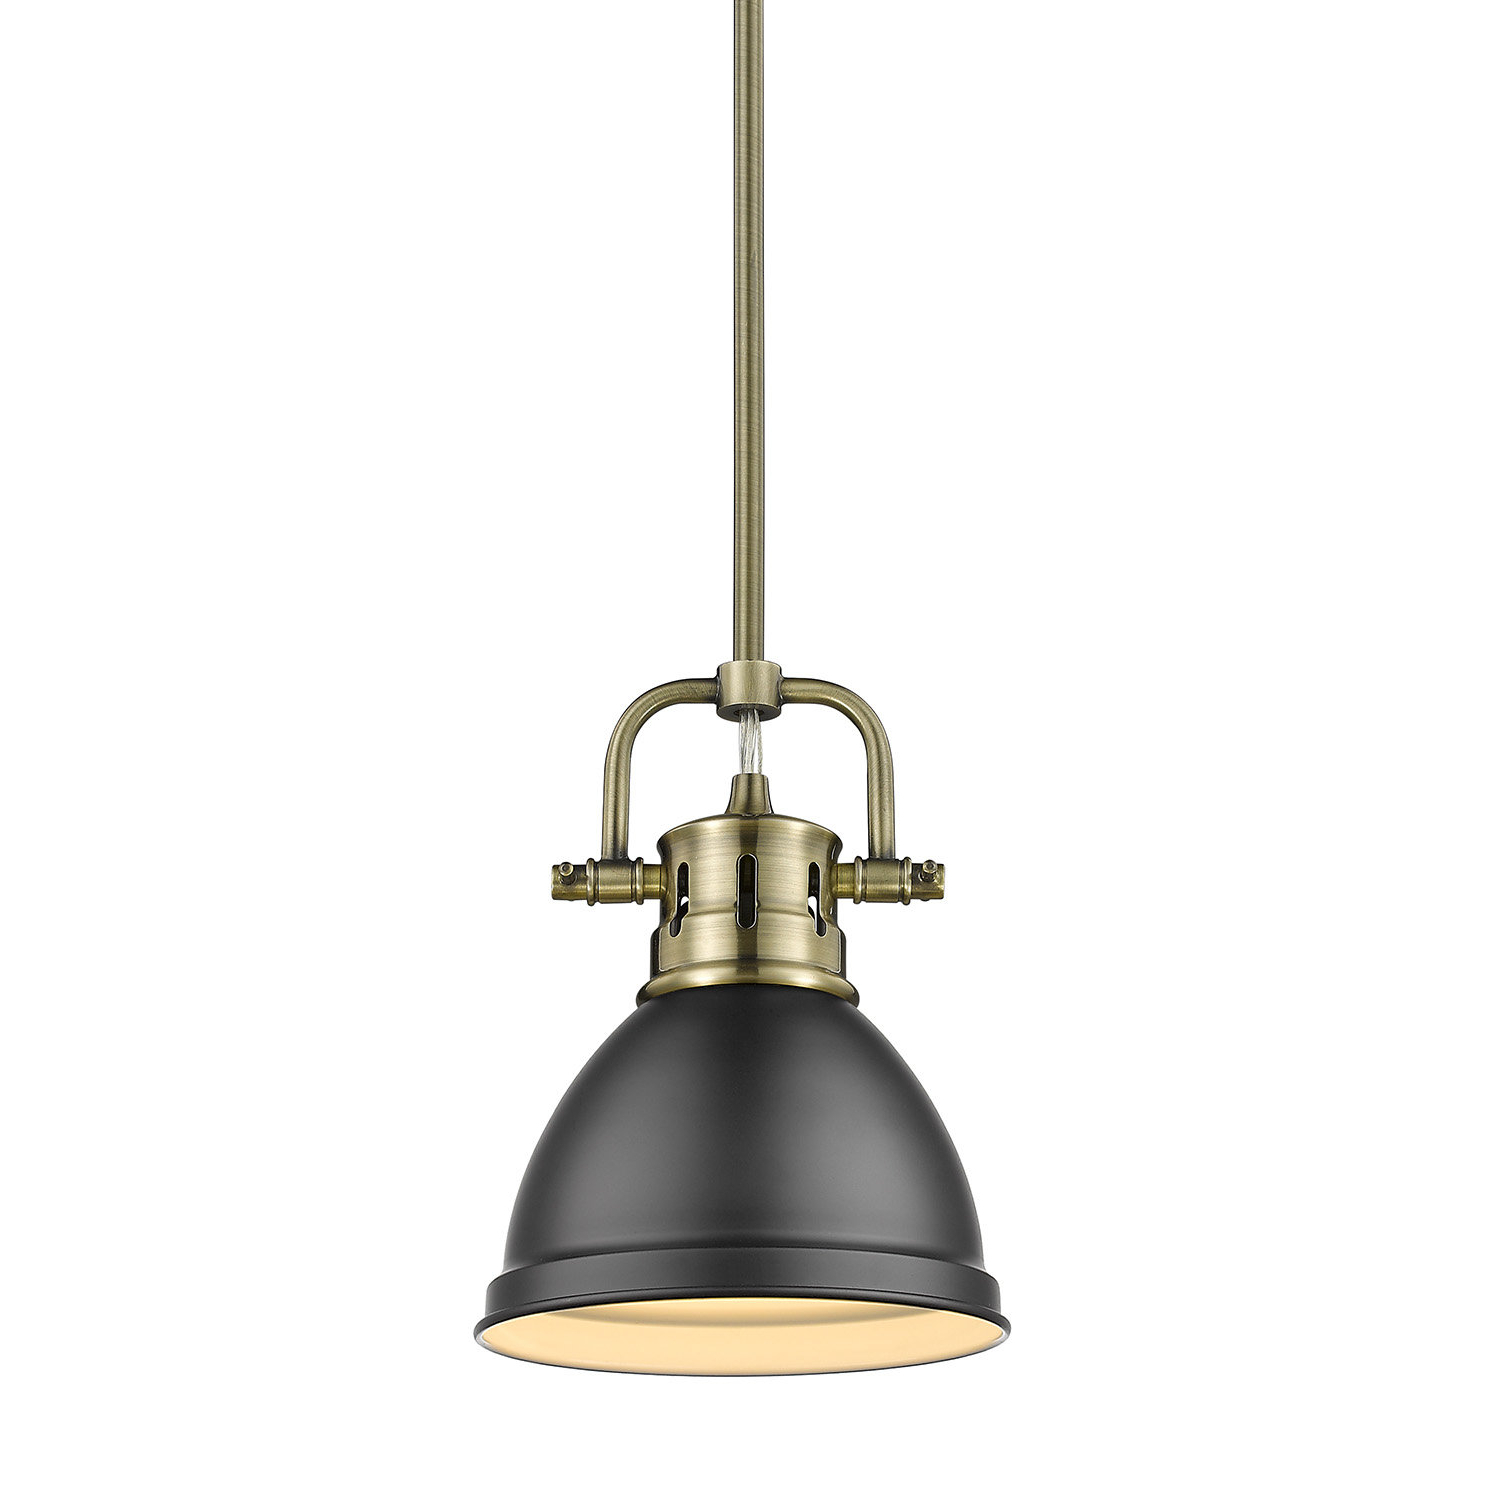 Bodalla 1 Light Single Bell Pendant With Current Bodalla 1 Light Single Bell Pendants (View 3 of 25)